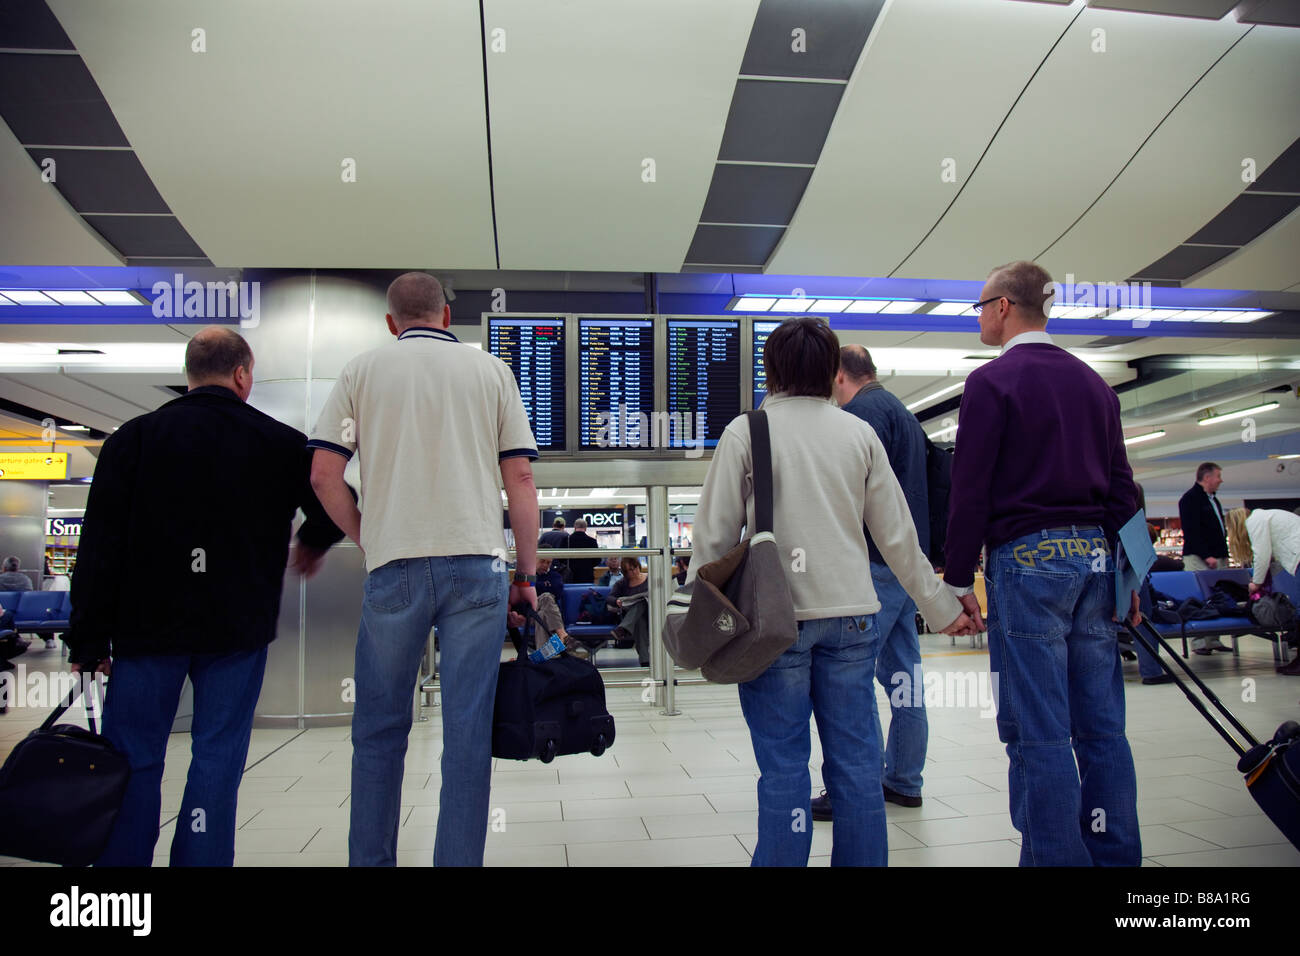 Travellers viewing departure and arrivals screen at Gatwick Airport - Stock Image